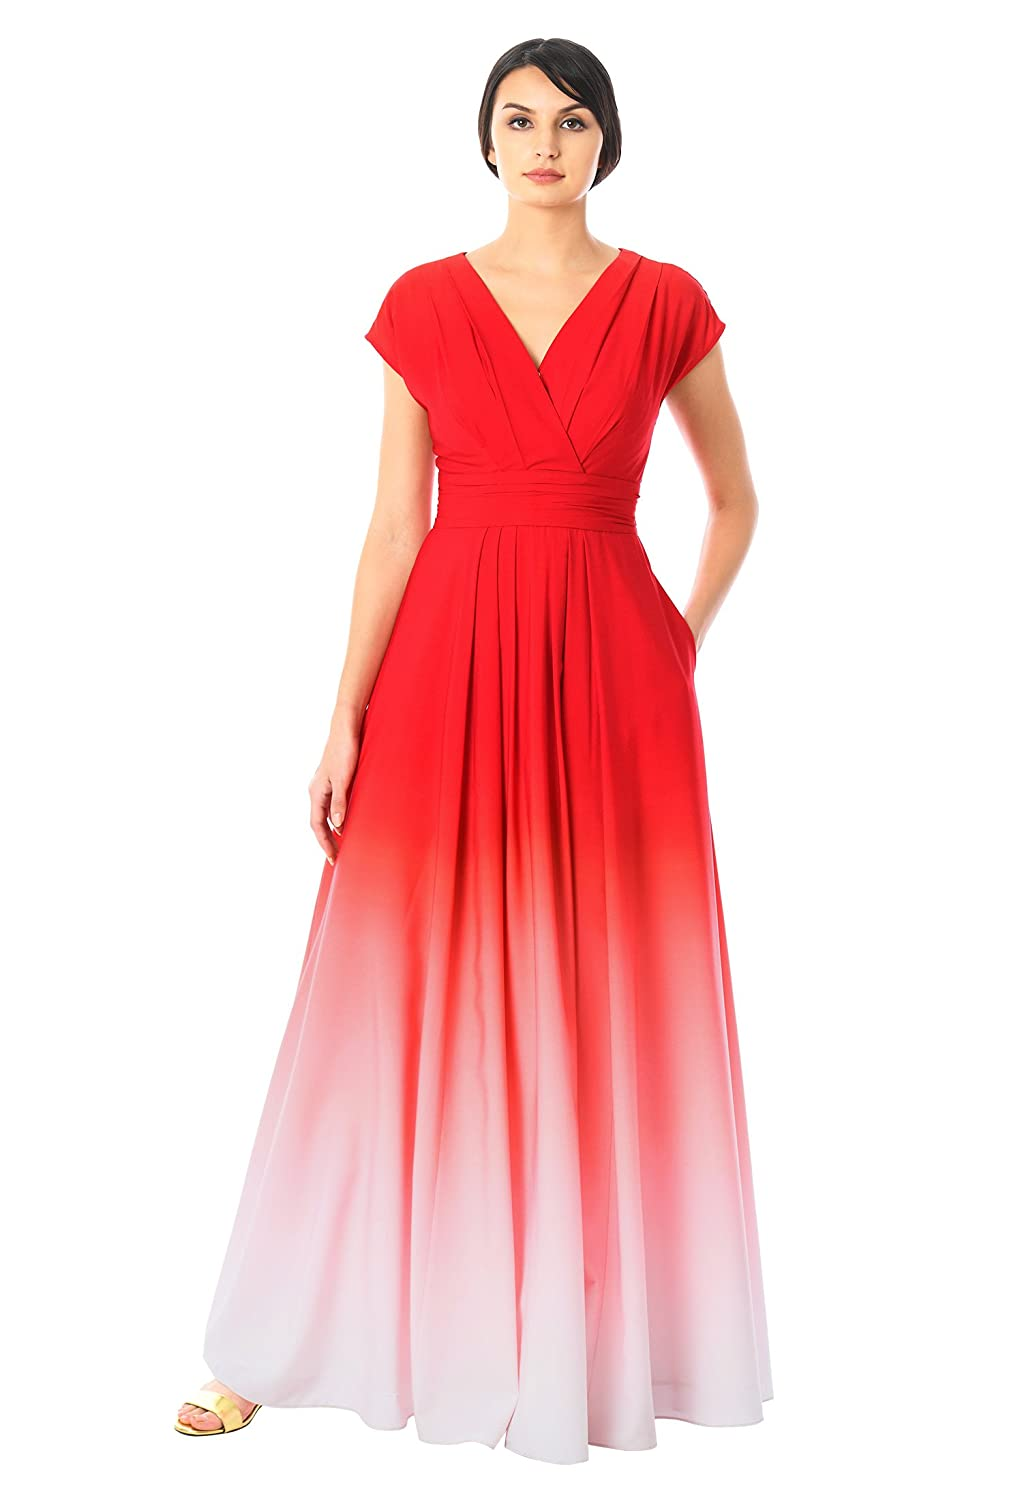 8797f4d1768 eShakti Women s Ombre Print Crepe Surplice Maxi Dress 1X-18W Regular  Red Coral Pink at Amazon Women s Clothing store